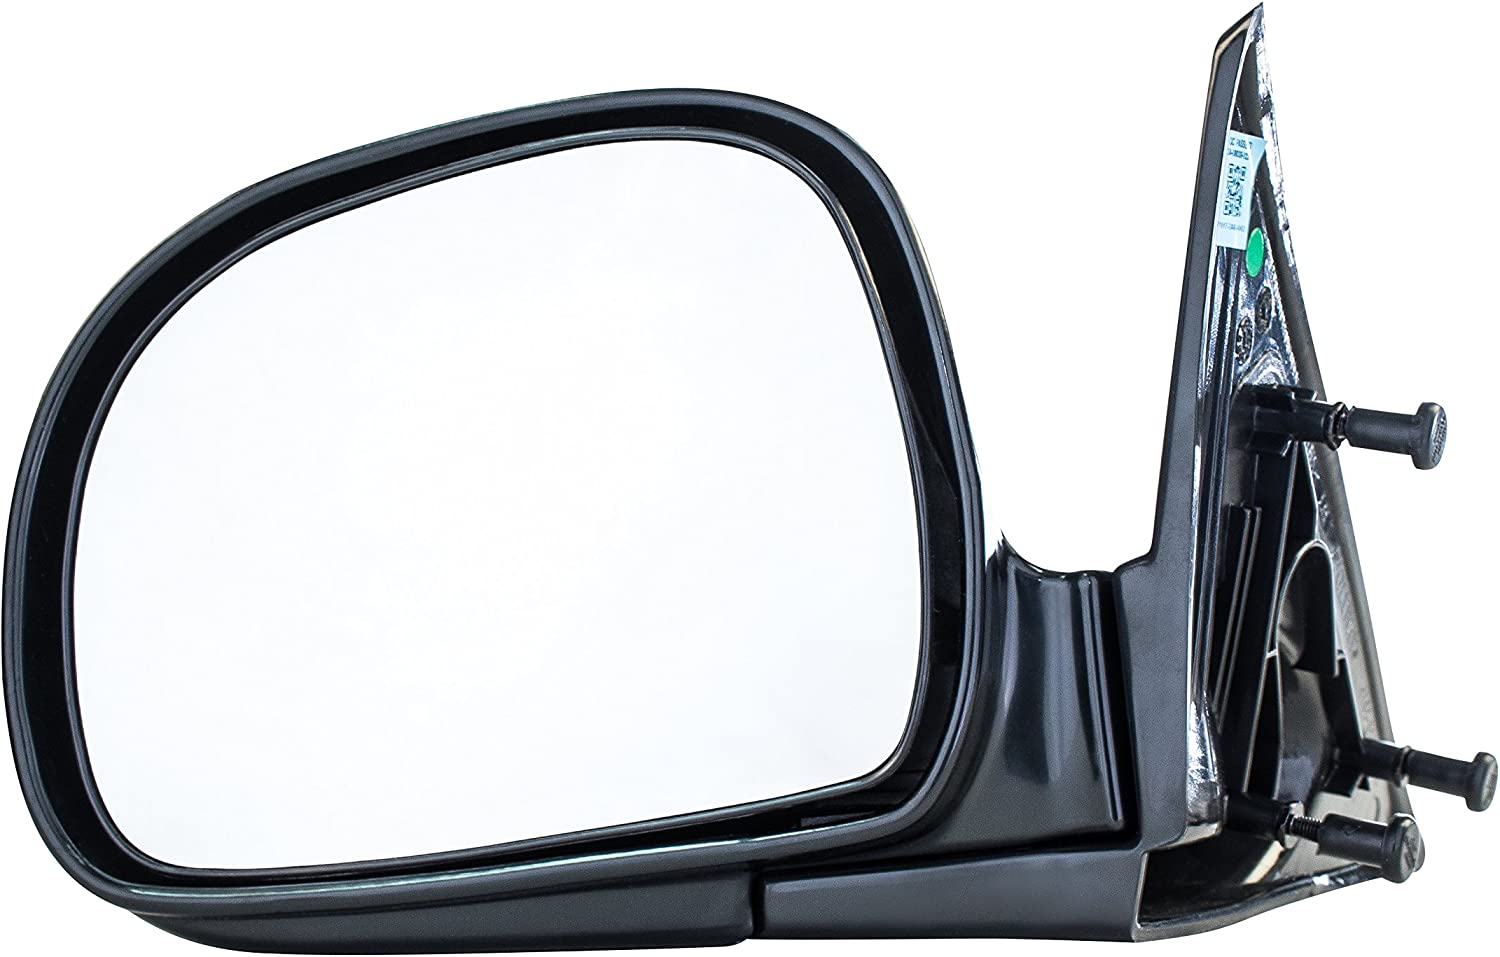 GM1320129 for 1994-2004 Chevrolet Chevy S10 Pickup GMC Sonoma Roane Concepts Replacement Left Driver Side Door Mirror Manual Non-Heated